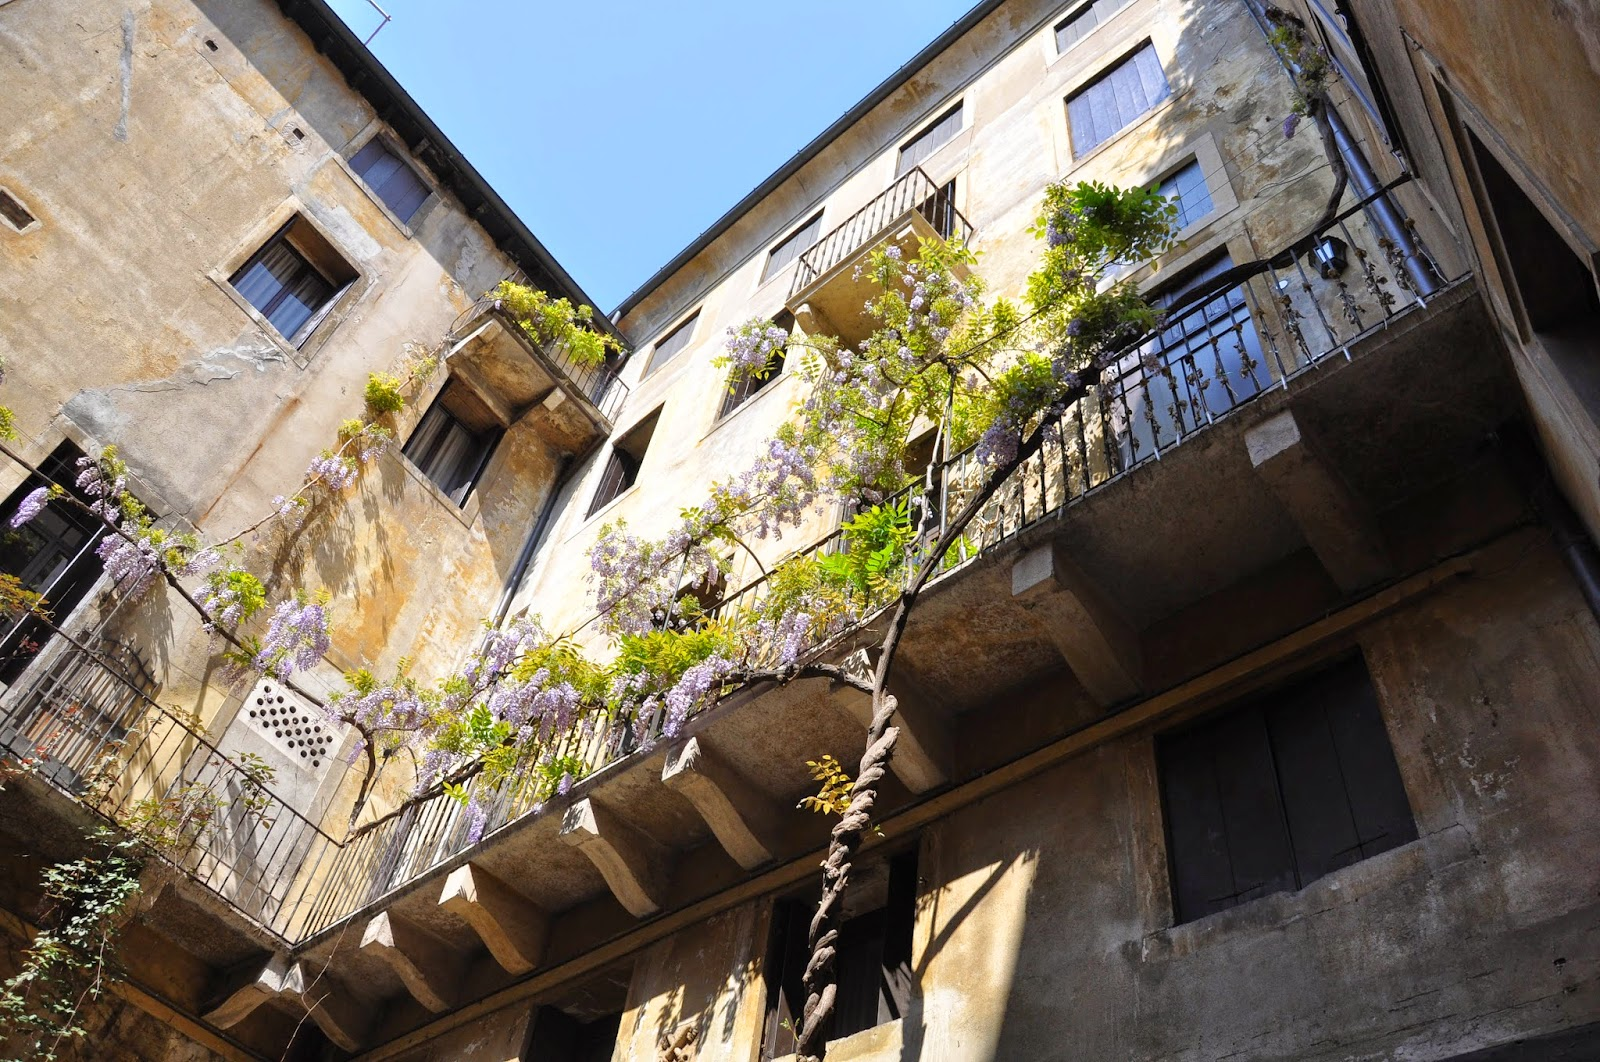 A wisteria tree envelopes the balcony in the courtyard of a house in Vicenza, Italy